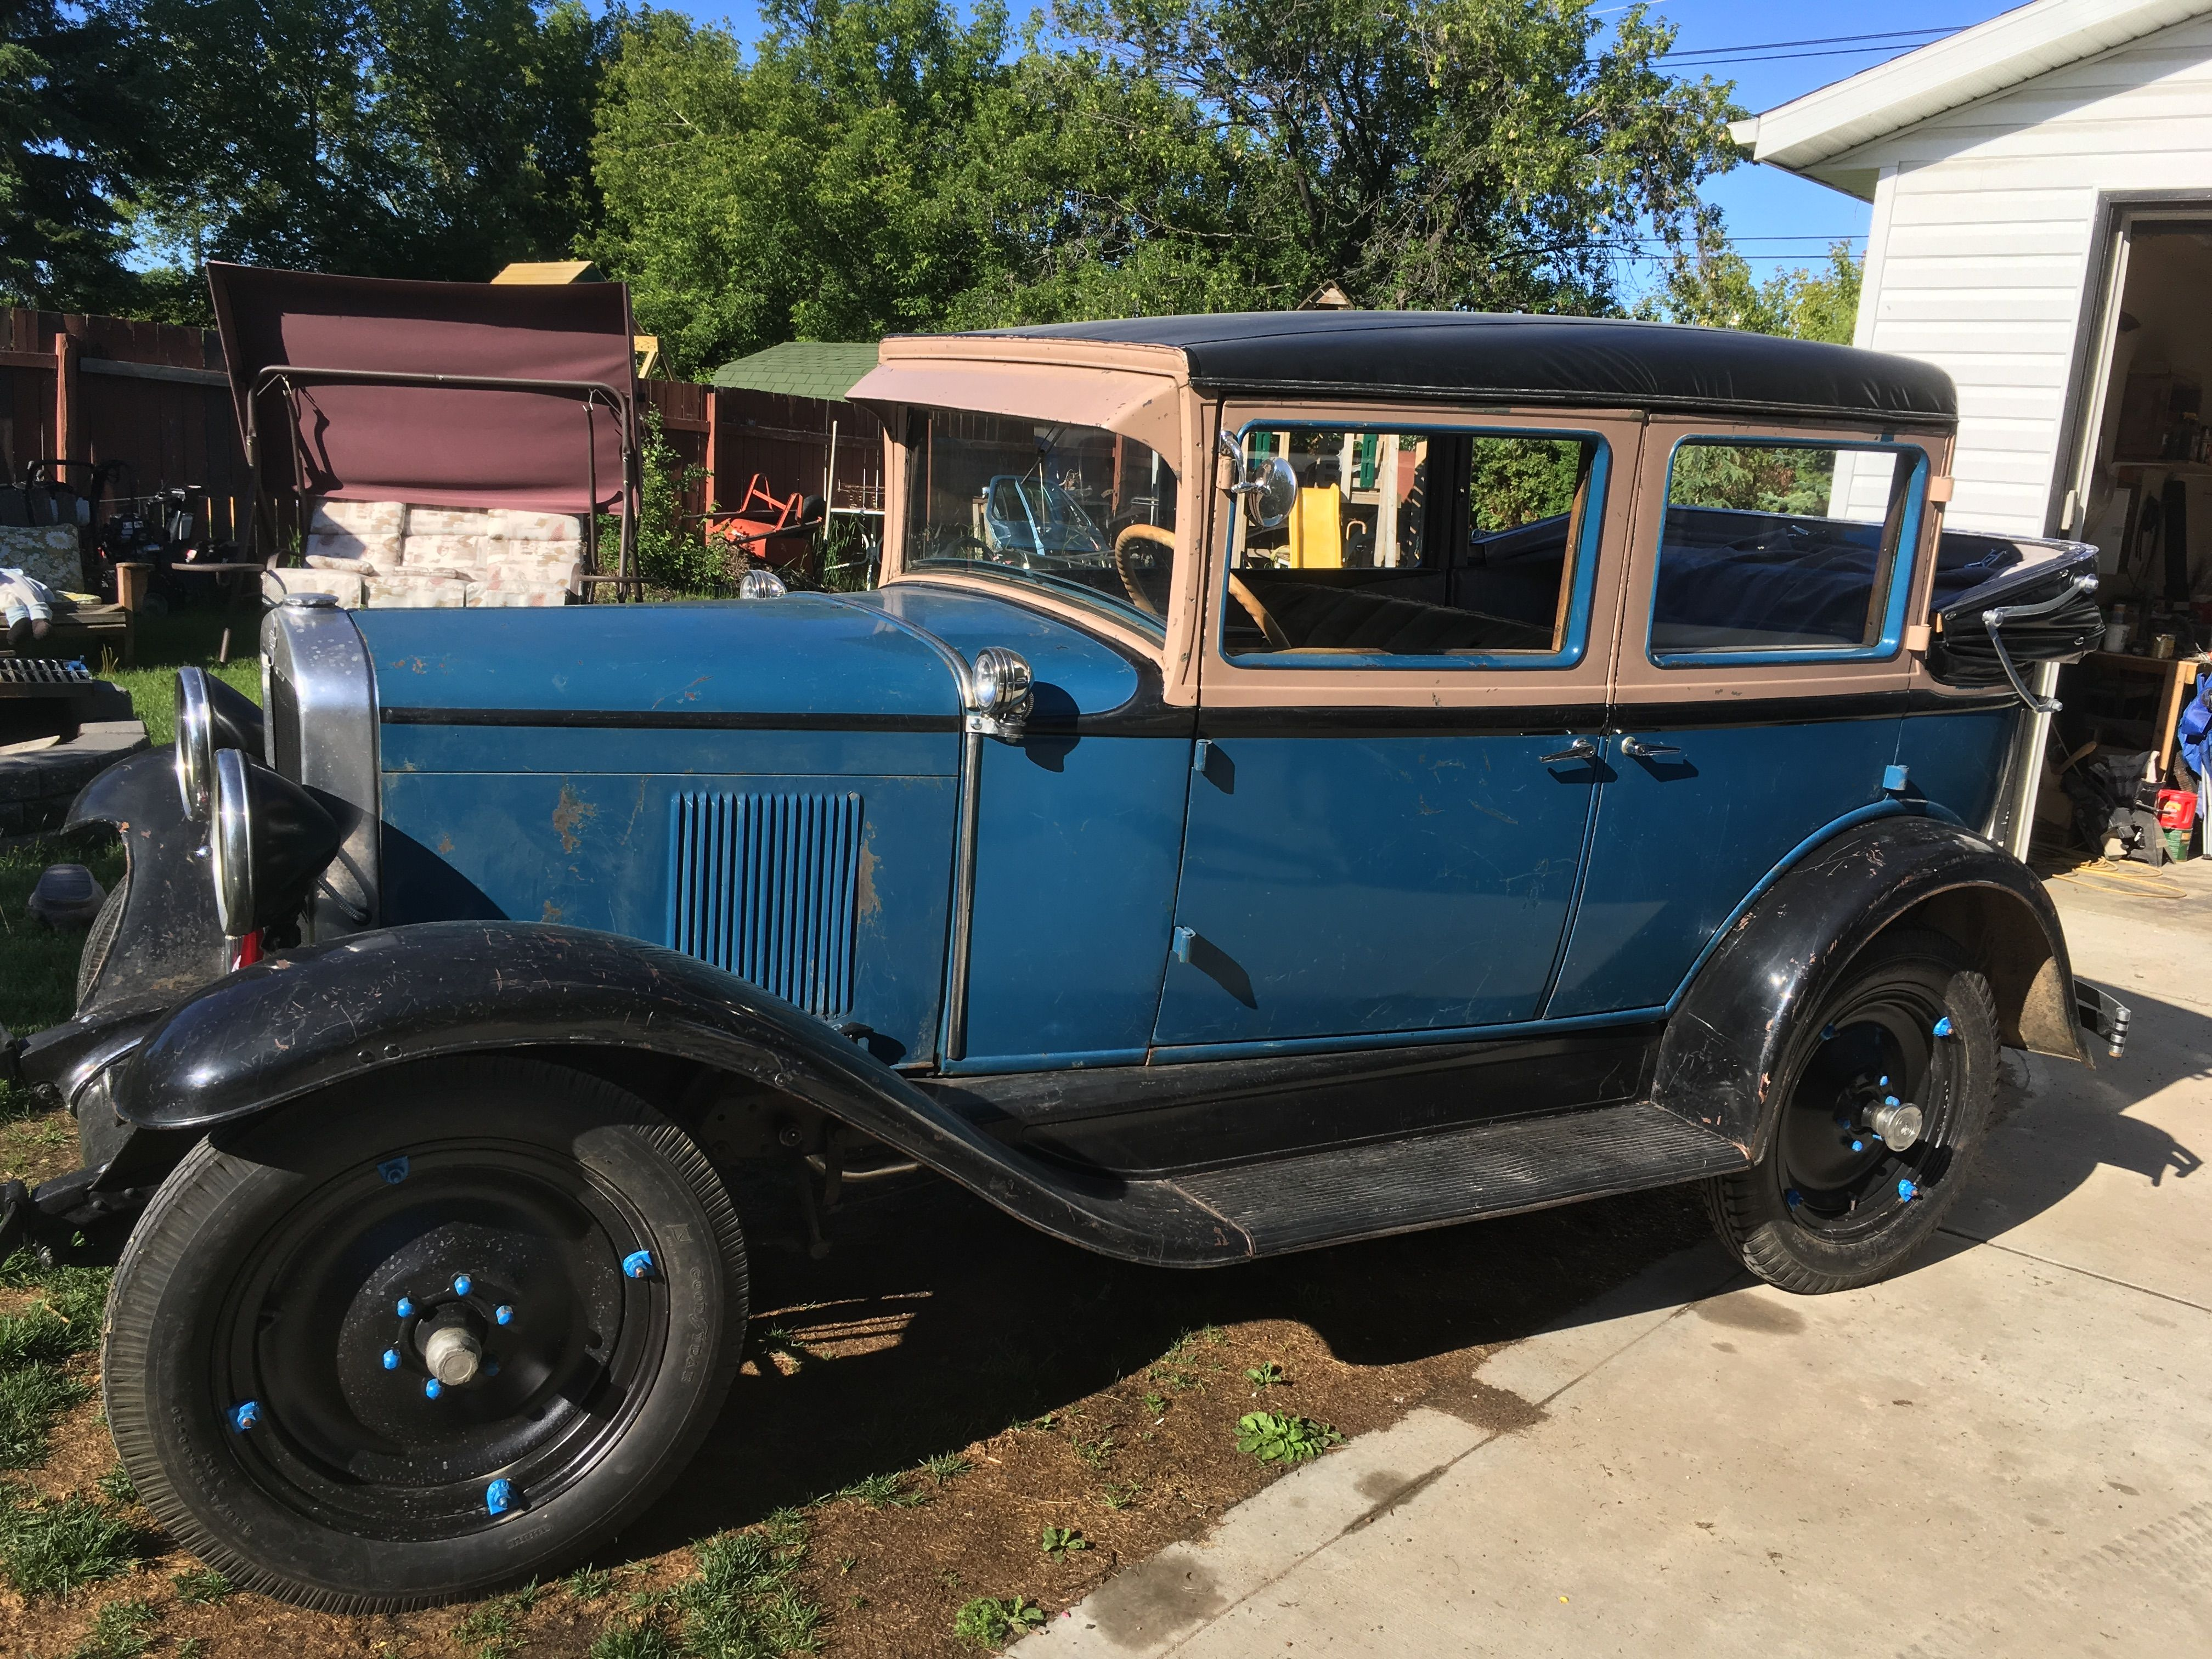 1929 Chevrolet Ac International Series Imperial Landau 4 Door Convertible Vintage Cars Antique Cars Classic Cars